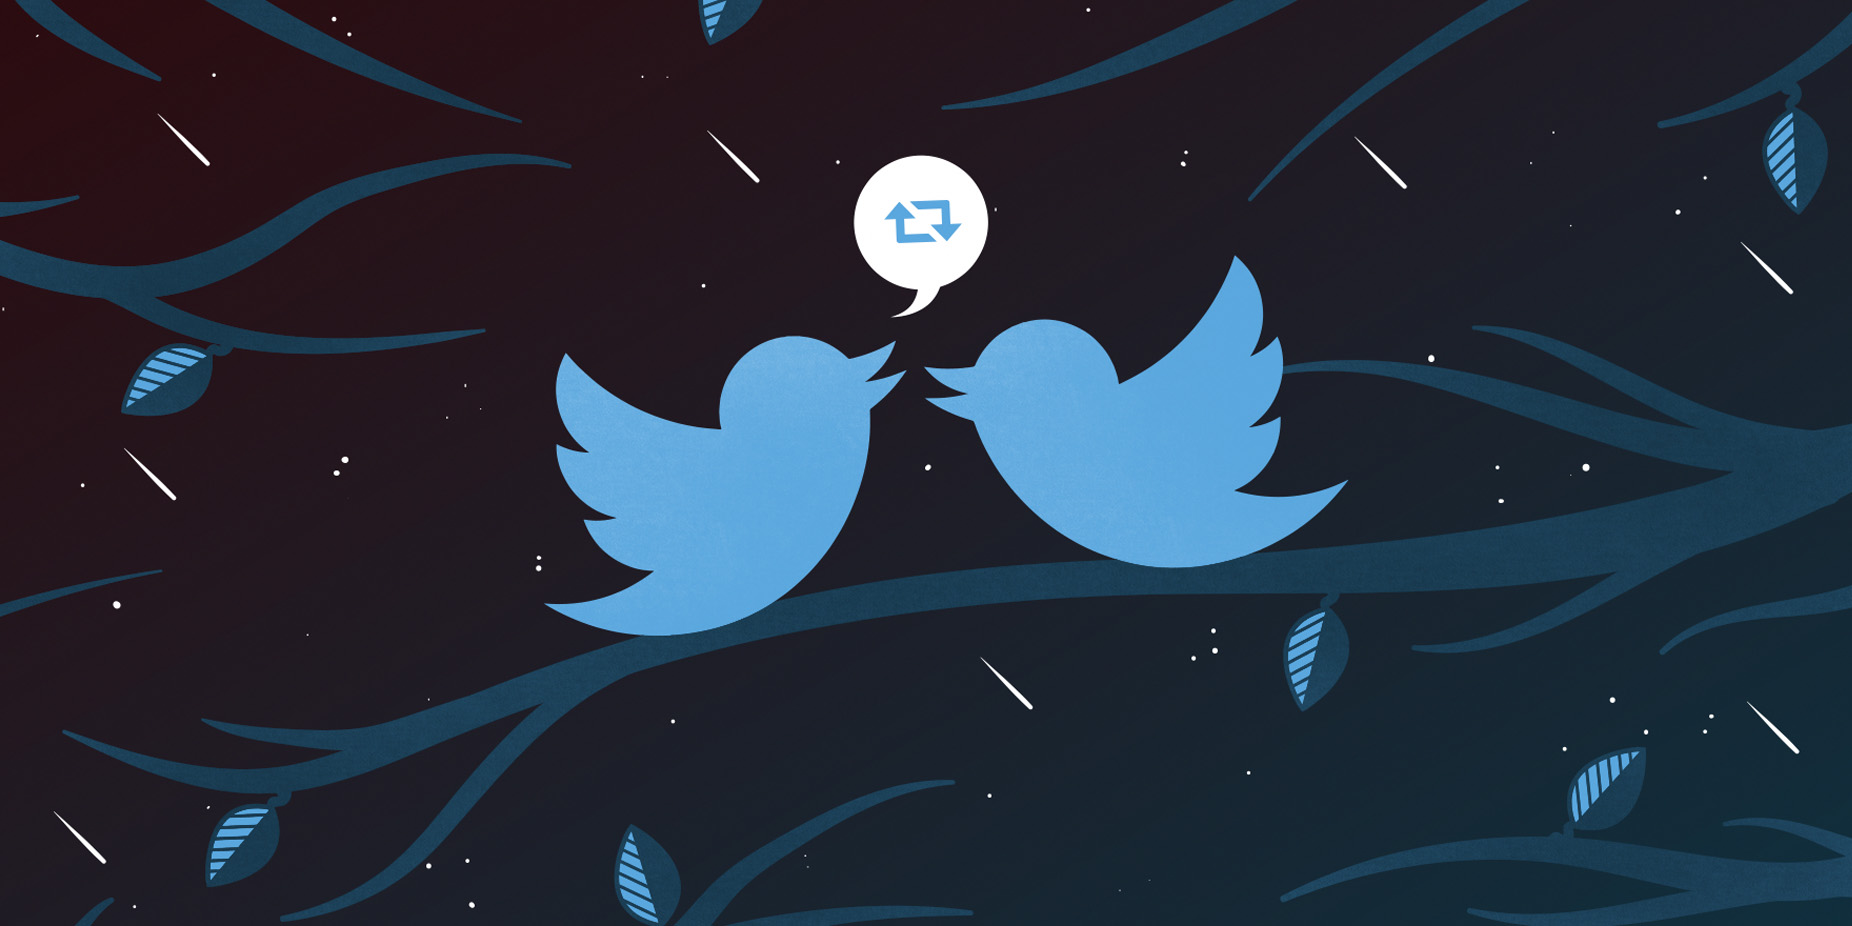 How to be a good person on Twitter